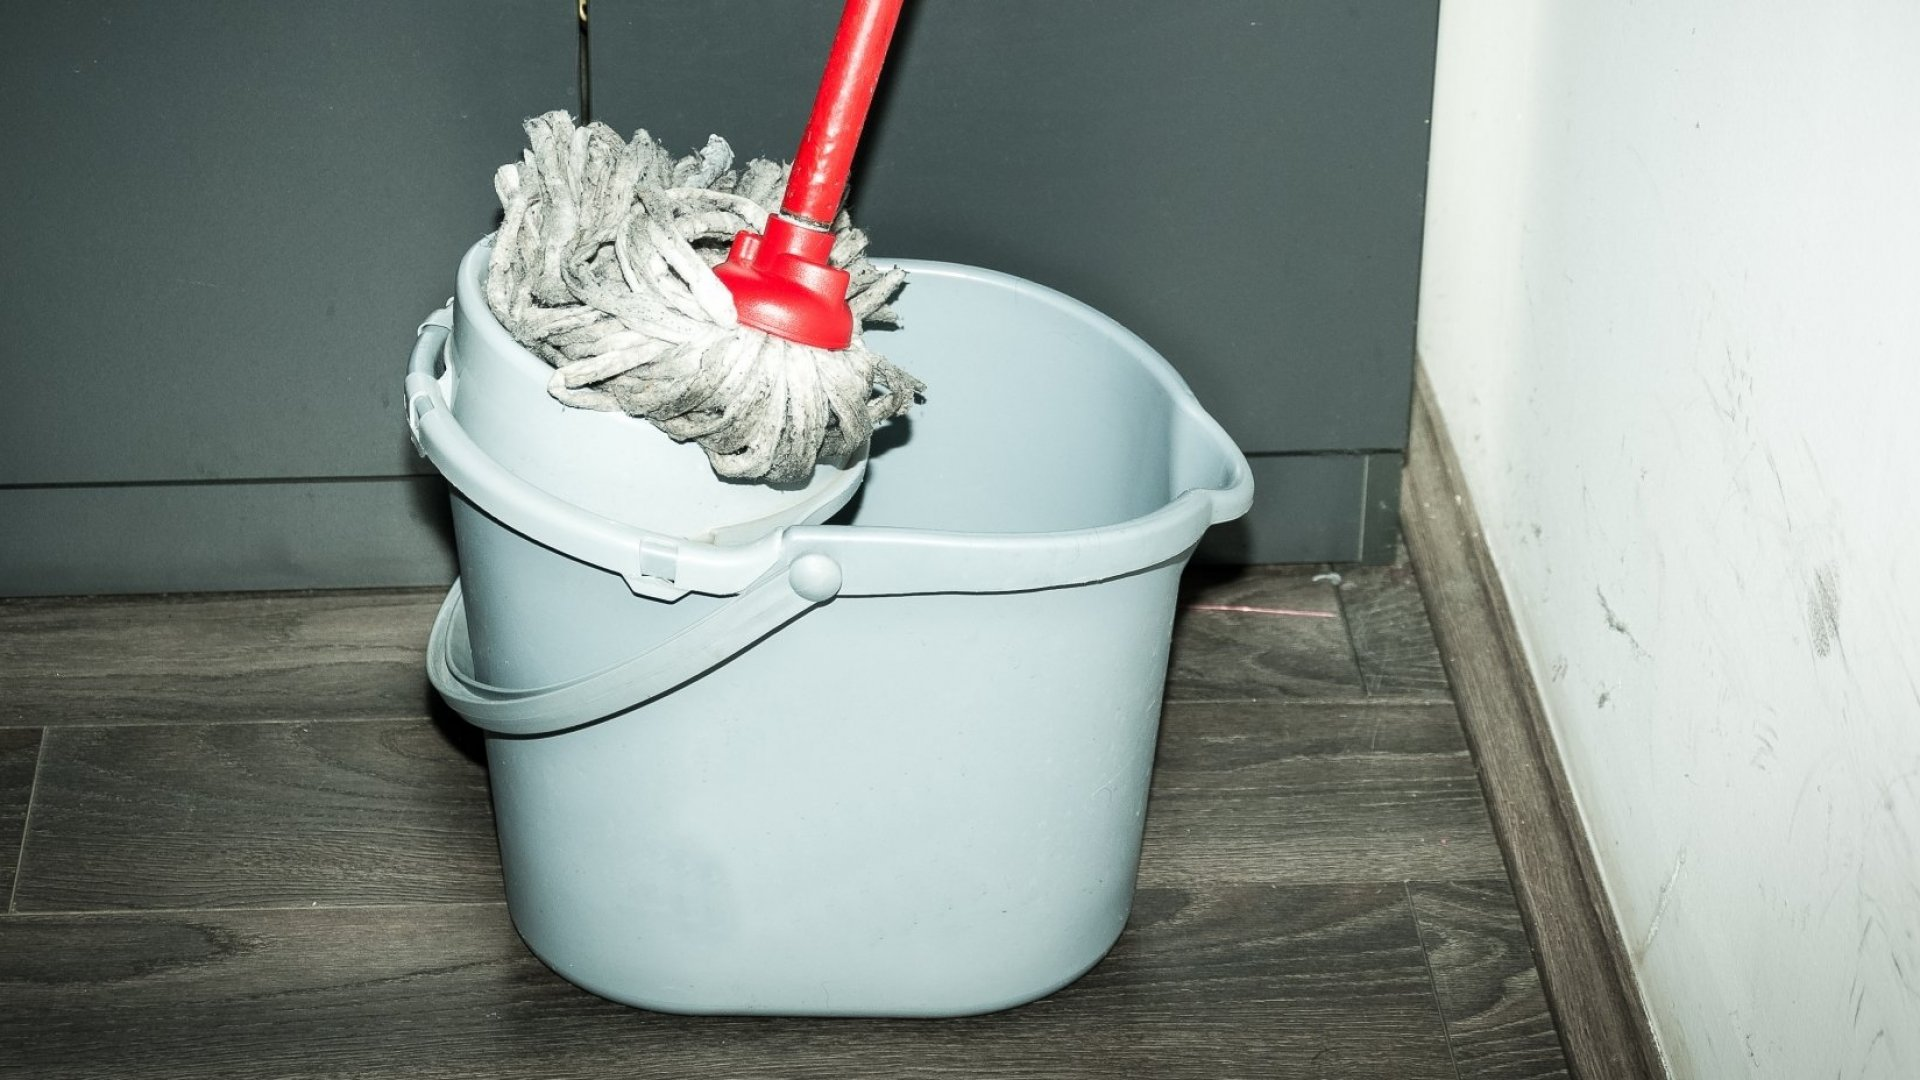 I Worked as a Janitor to Make Money While Starting My Business--and It Made Me a Better Entrepreneur